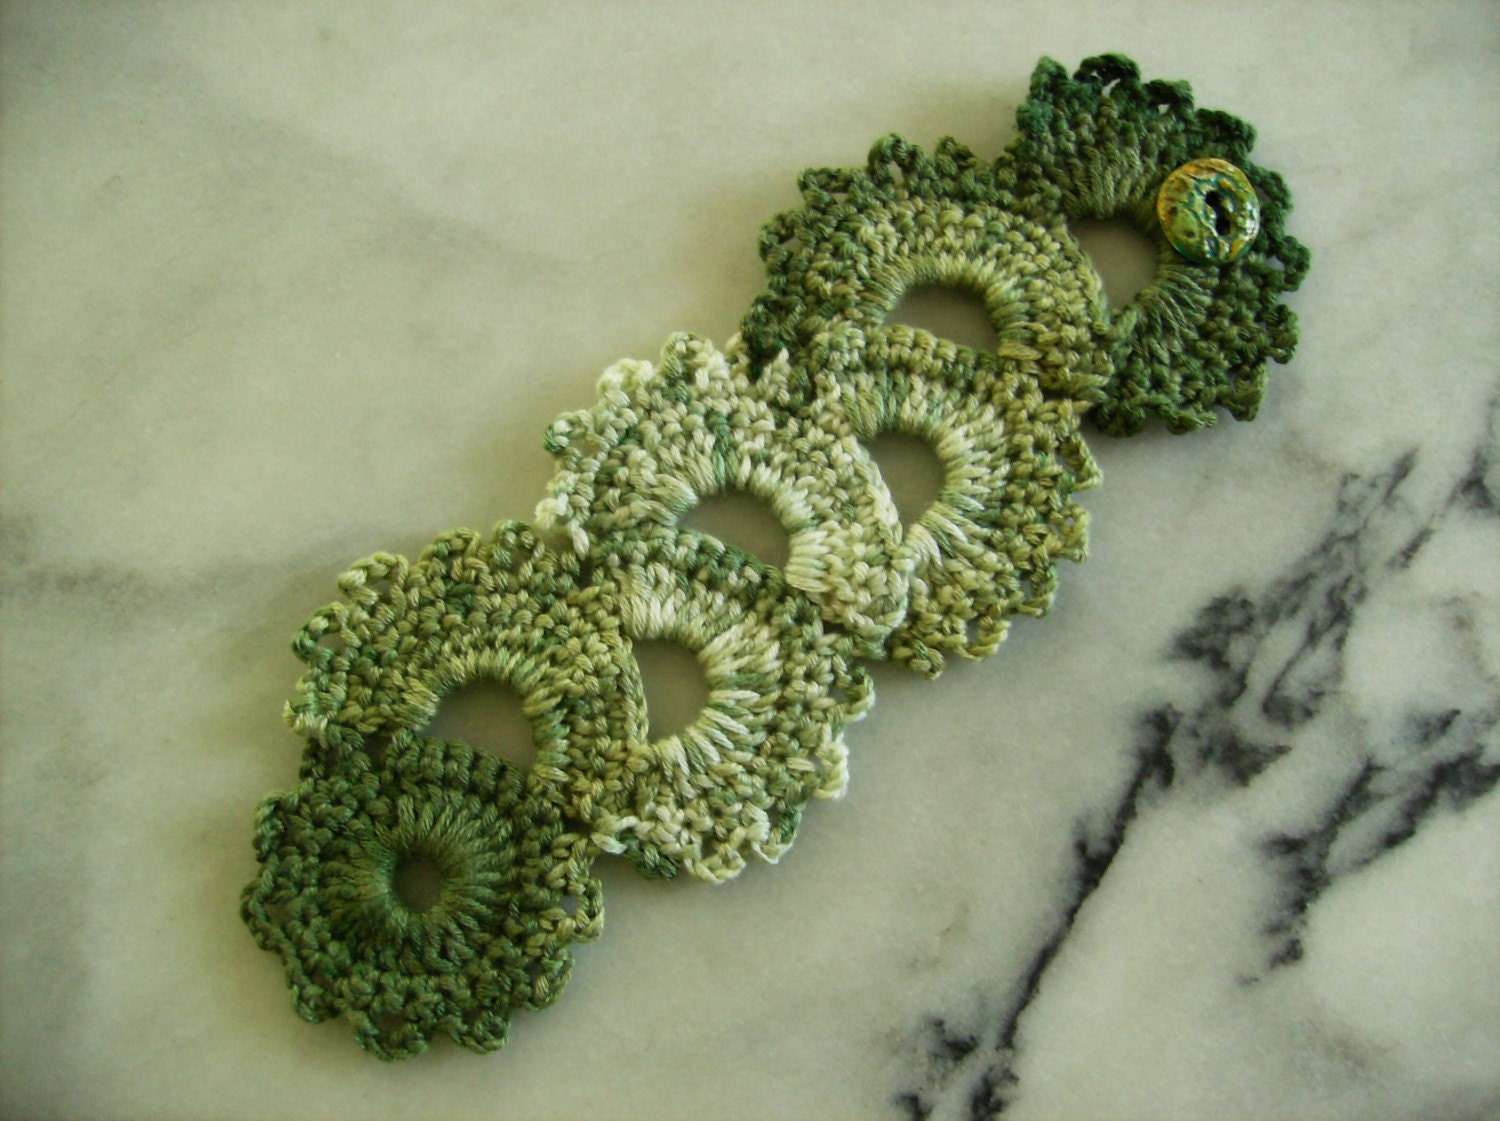 Connemara Green Crochet Lace Bracelet Cuff with Custom Handmade Button